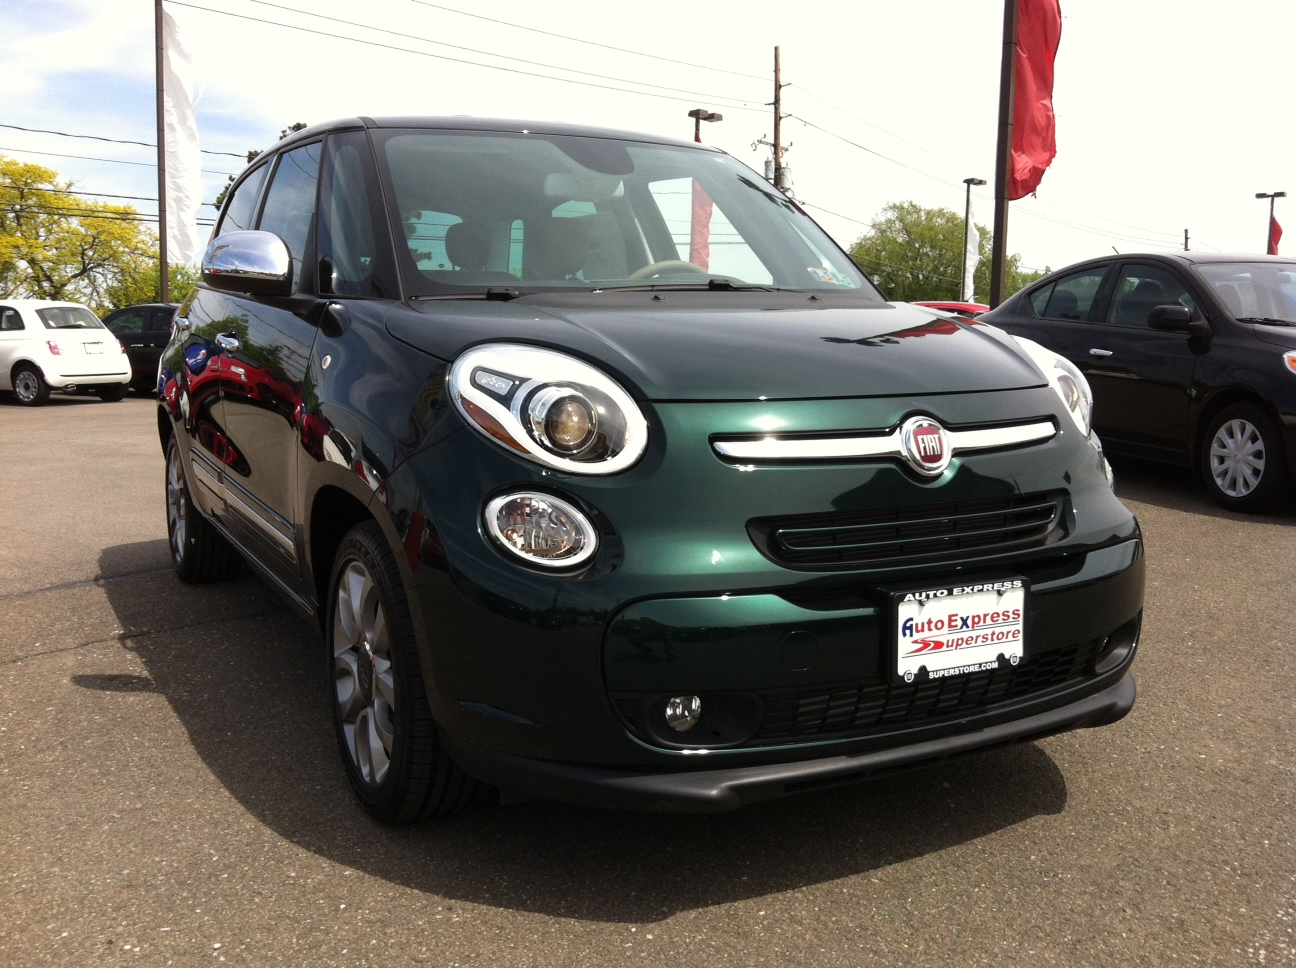 Auto Express FIAT of Erie in Waterford, PA 16441 - ChamberofCommerce.com